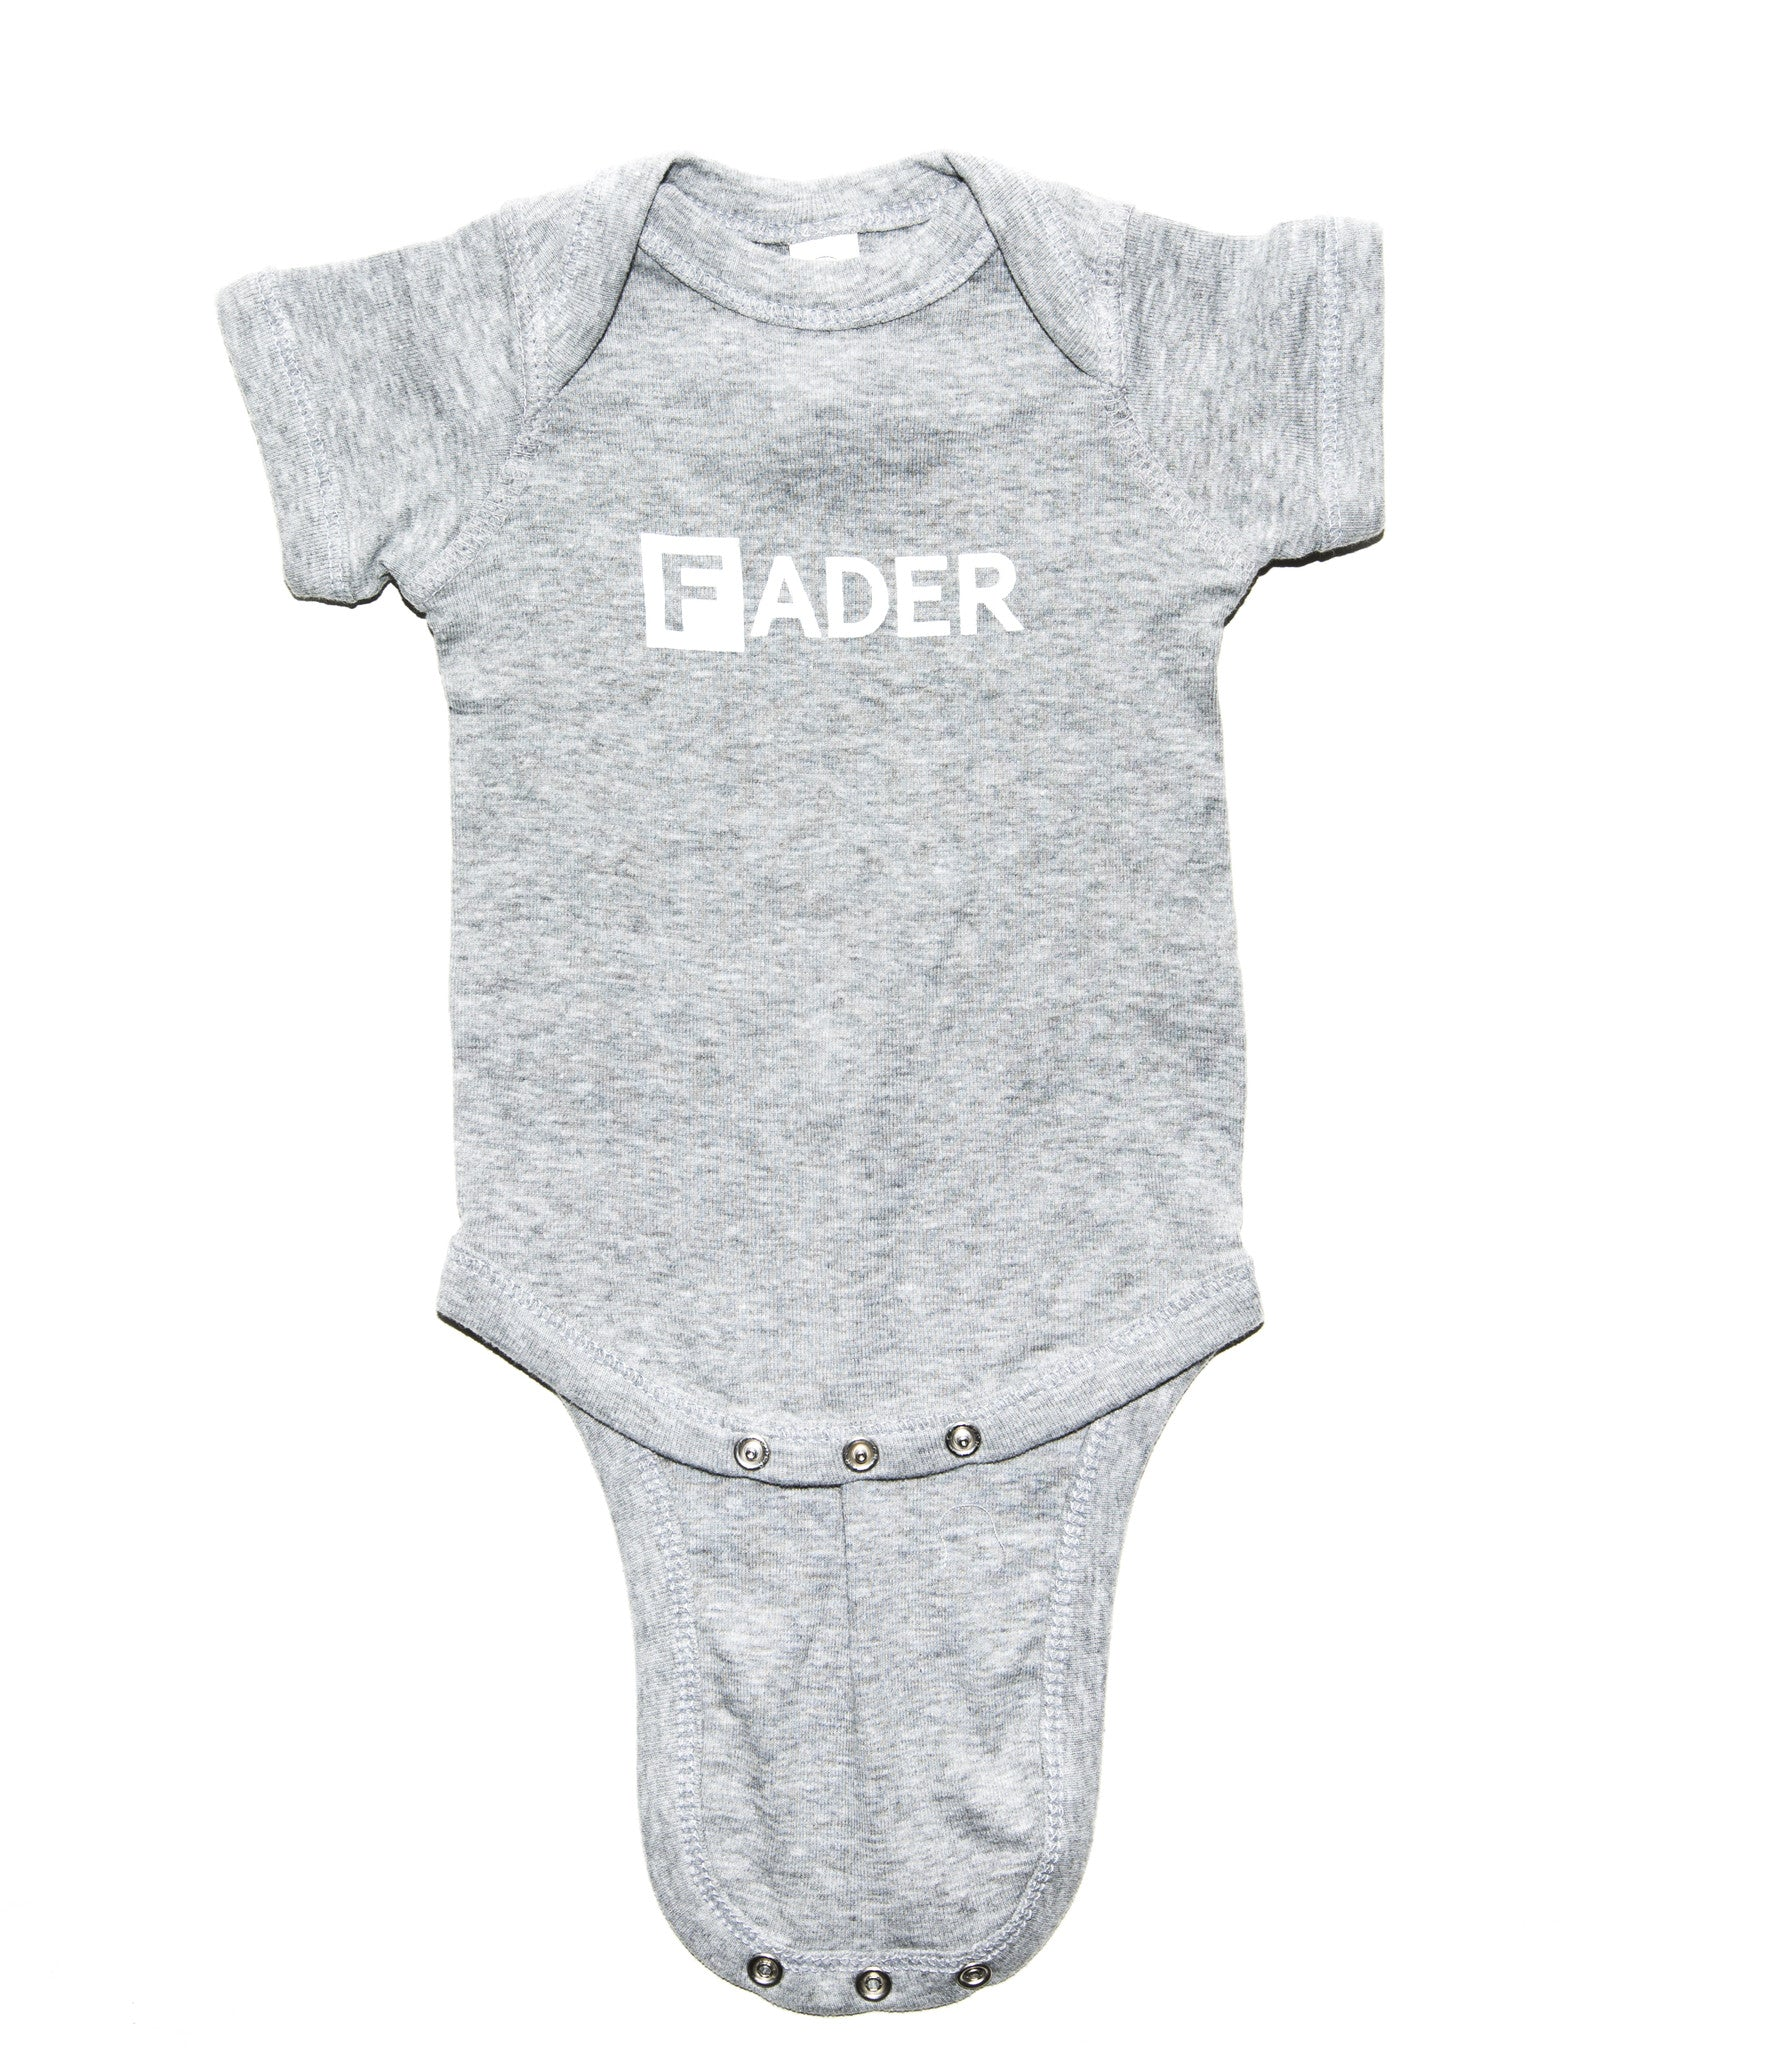 The FADER Baby Onesie (Grey) - The FADER